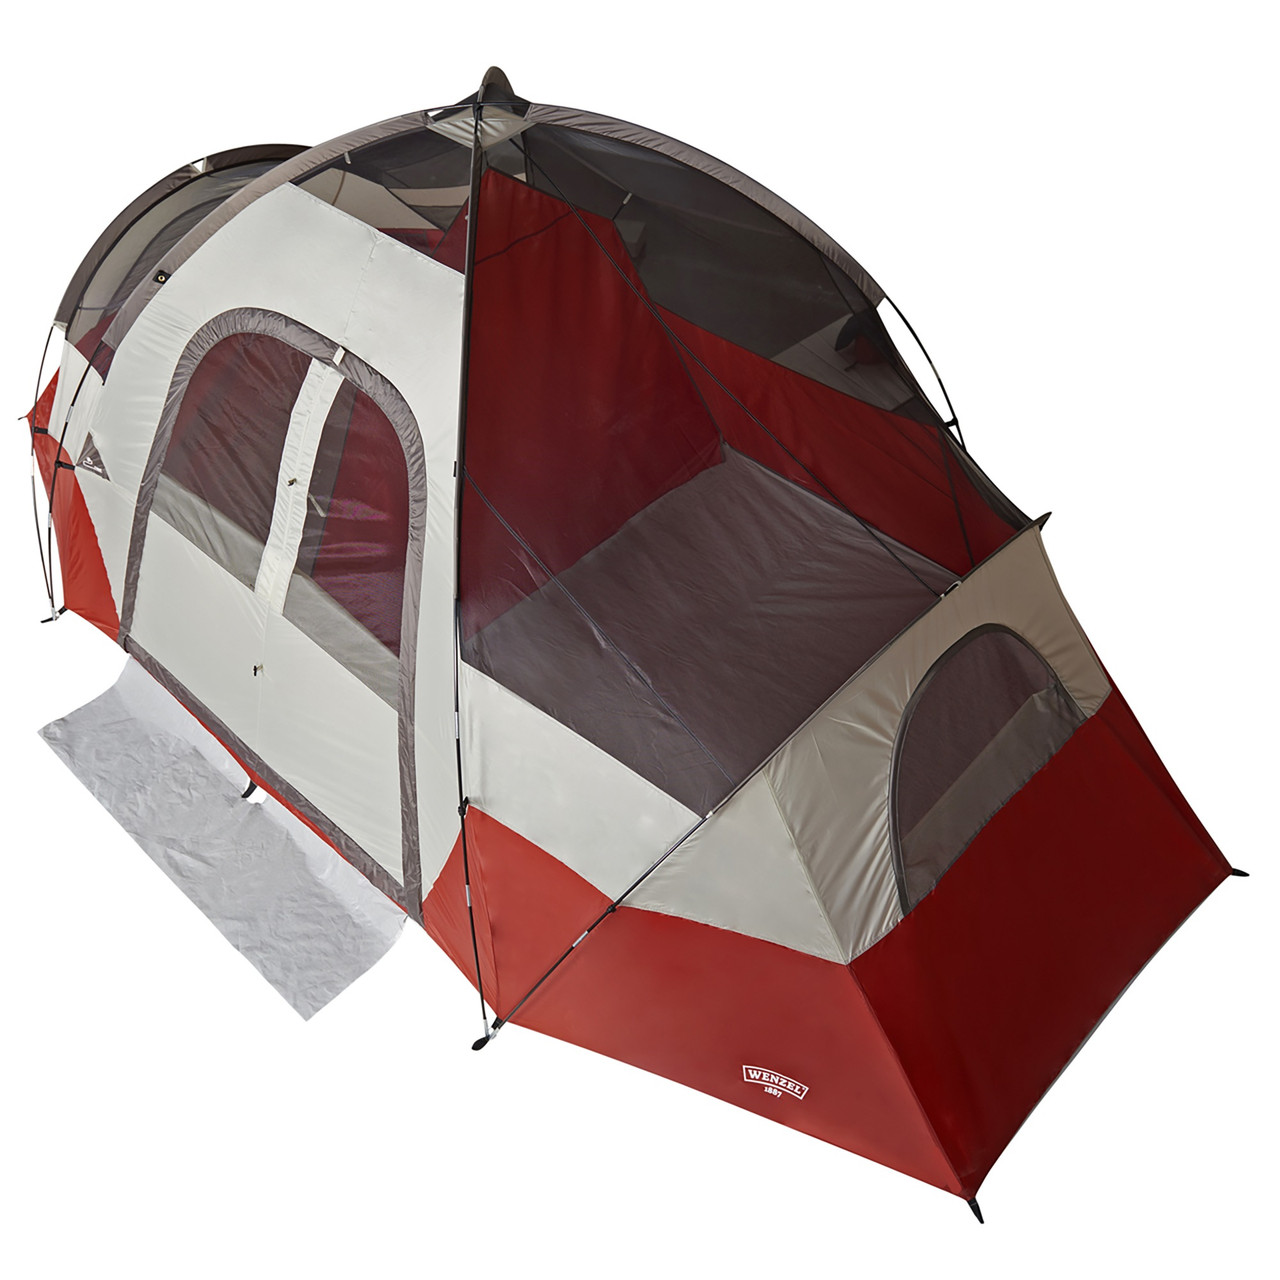 Wenzel Bristlecone 8 Person Dome Tent, red/white, top view, fly off